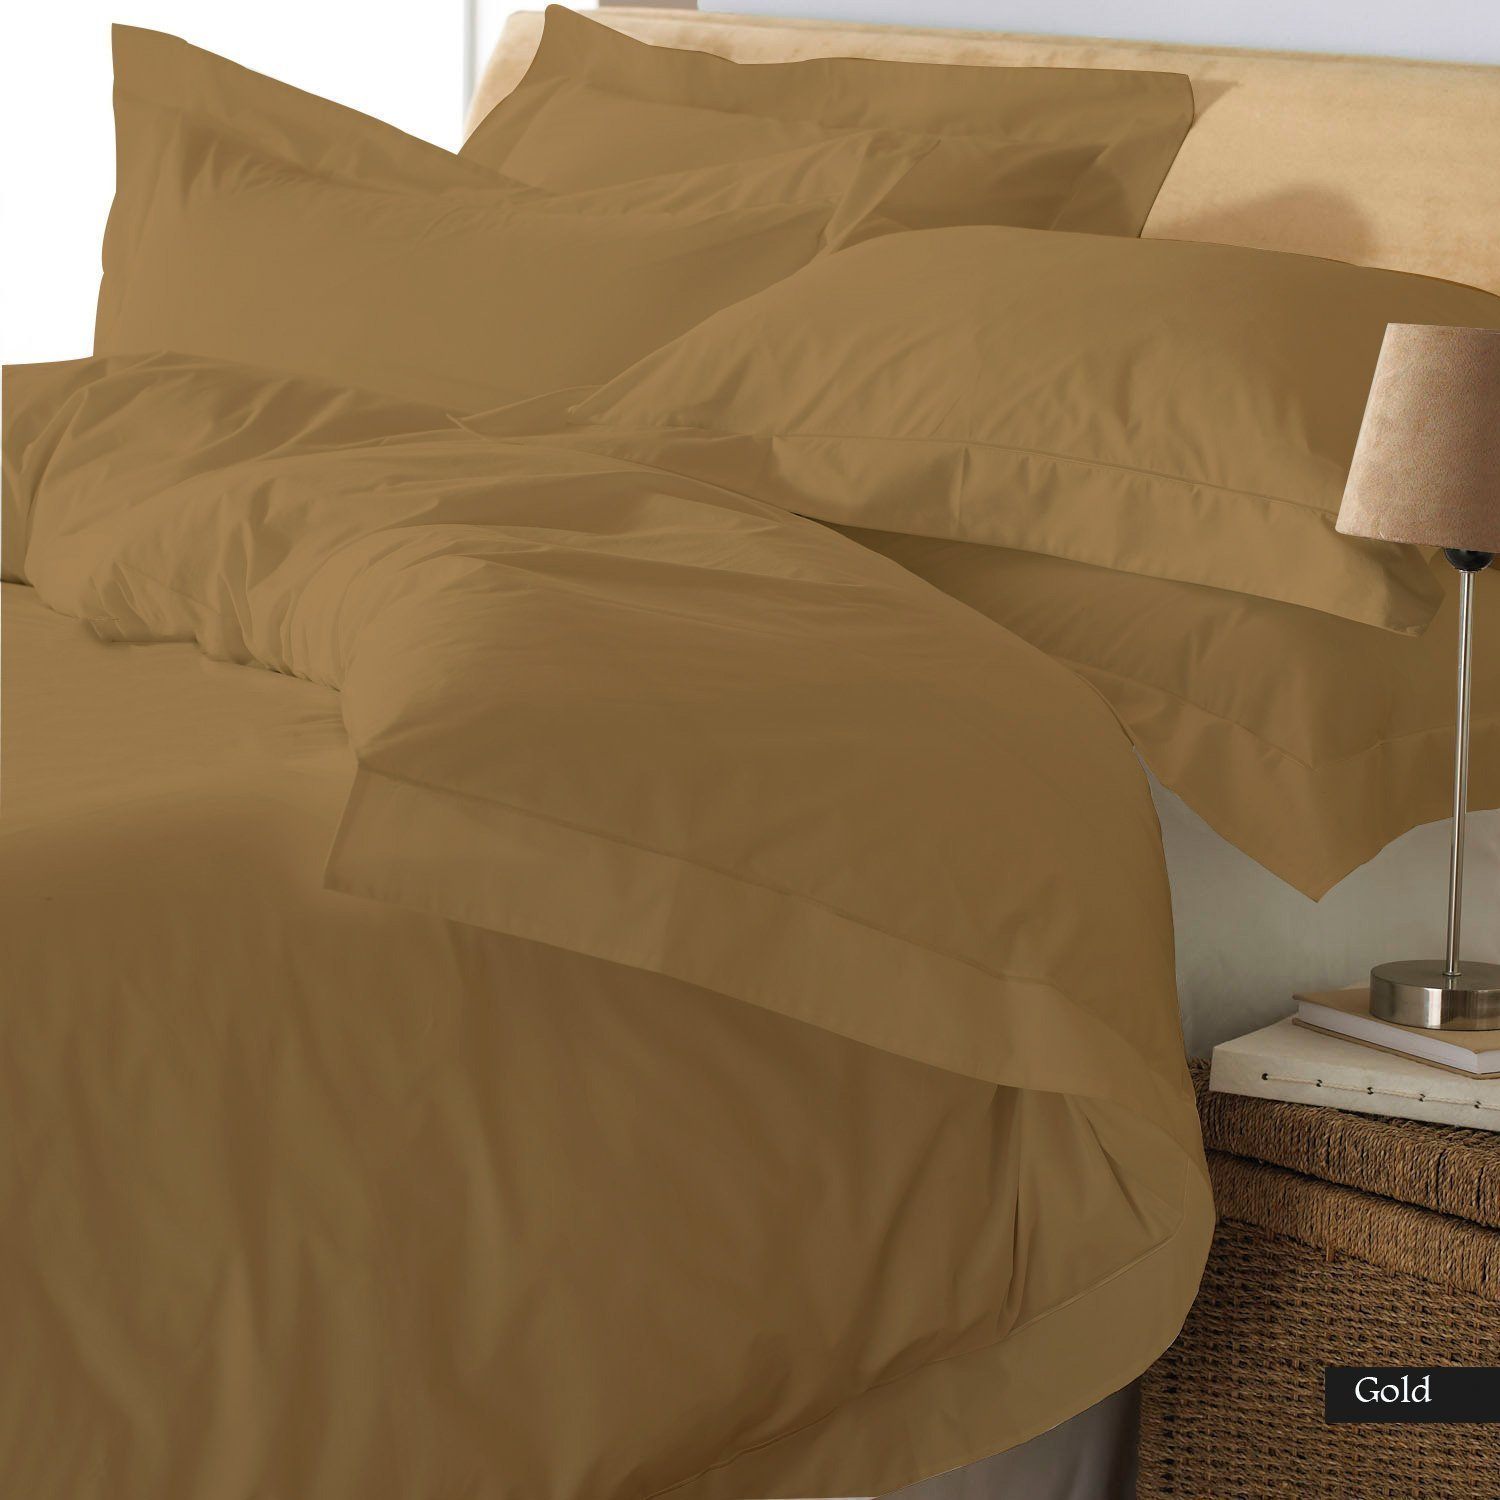 Reliable Bedding Ultra Soft Luxury Premium Organic cotton Solid,3-Piece Duvet Set (1 Duvet Cover & 2 Pillow Shams) 600 Thread Count, Made In India - Italian Finish !!!(CAL-King/Gold)